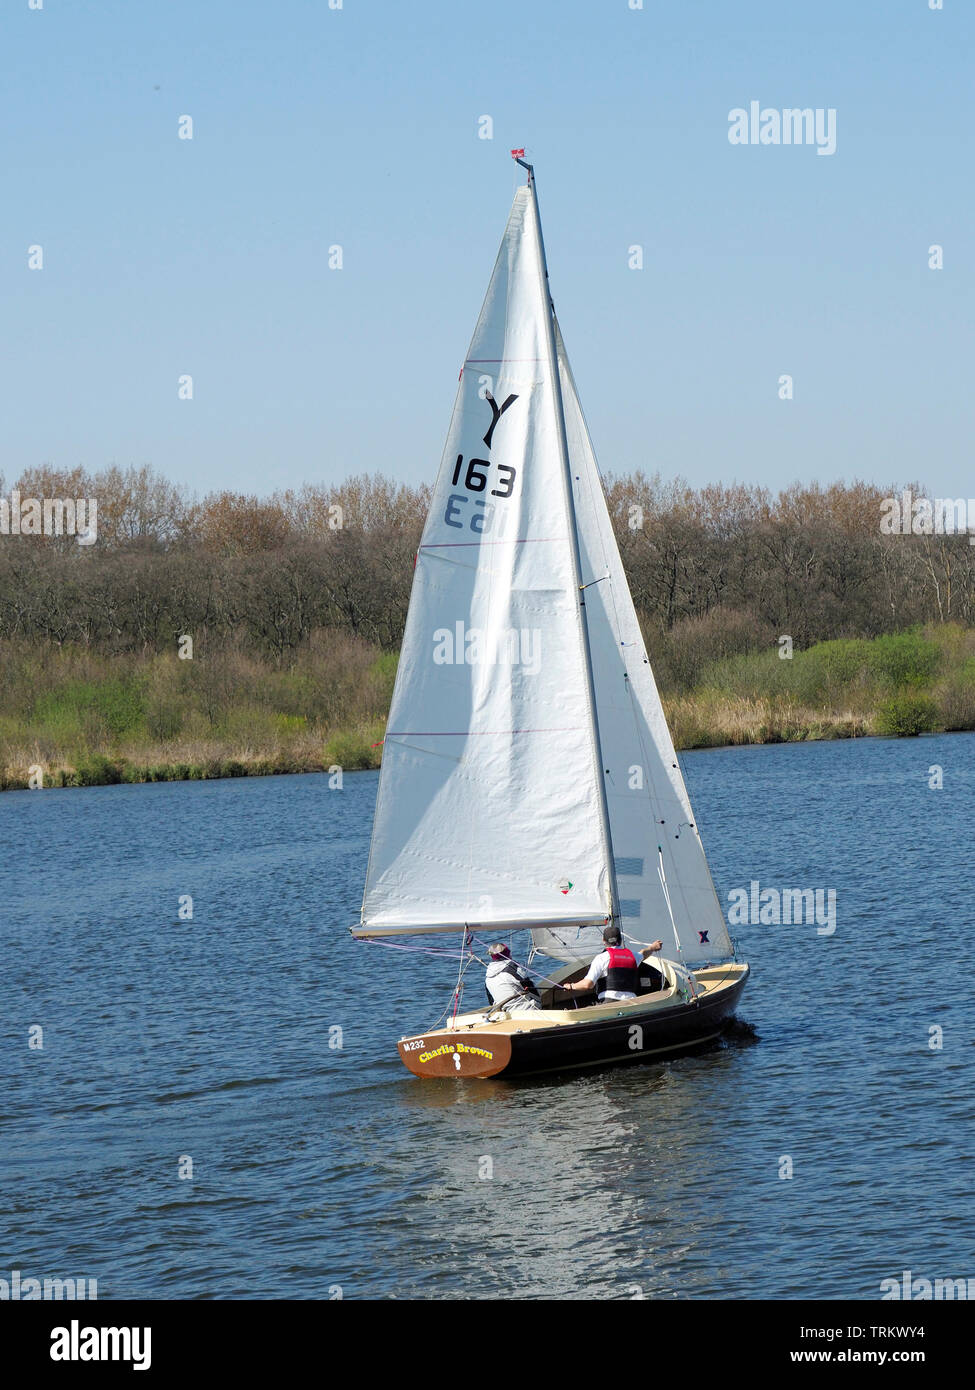 Sailing is a popular pastime on the Norfolk Broads. This small sailboat is making its way along the Rover Bure near Wroxham. Stock Photo